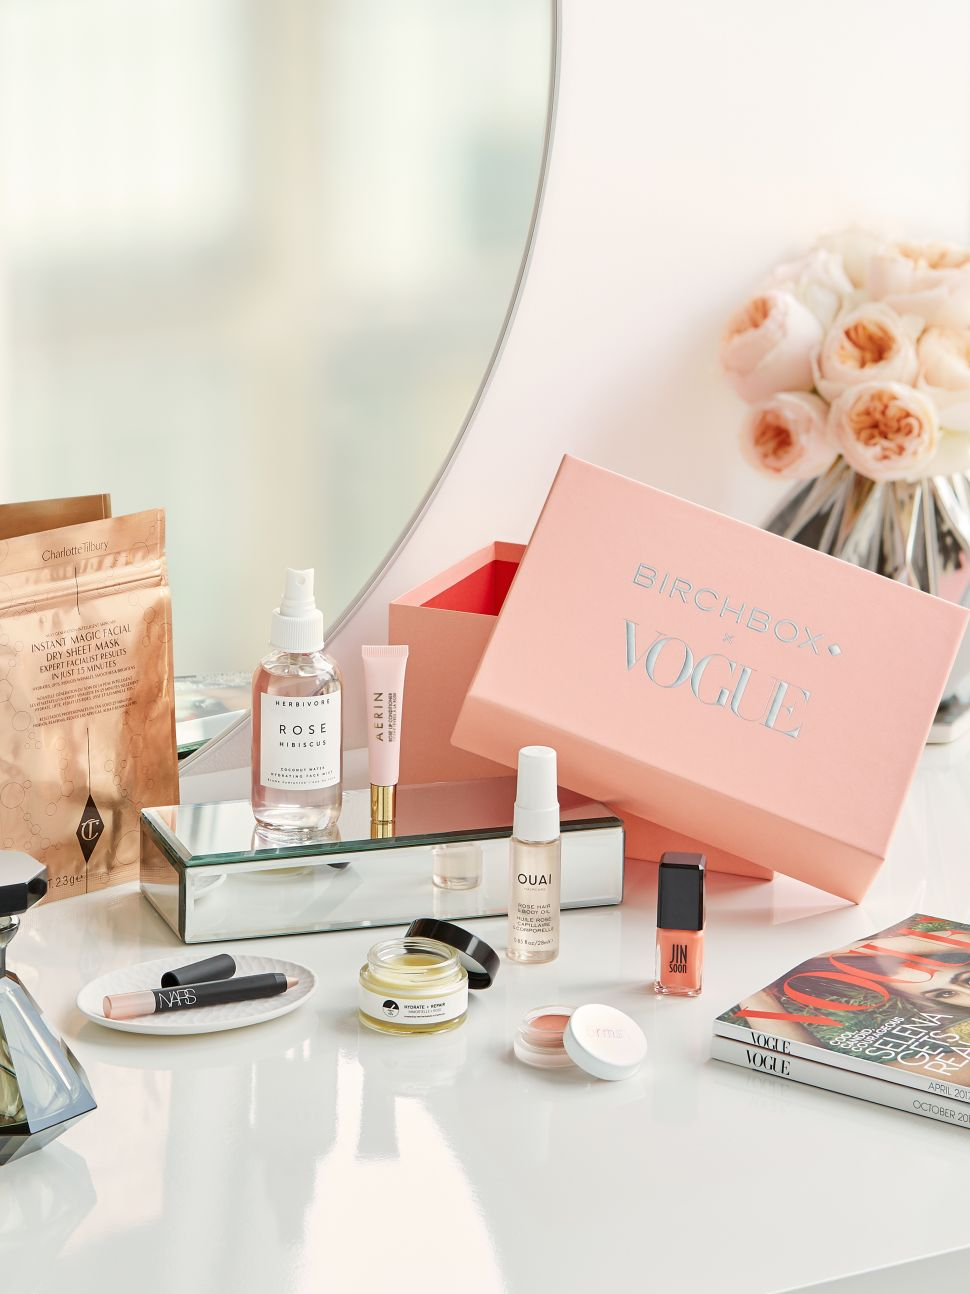 Vogue Built a Beauty Box; Vetements Does Entry-Level Merch